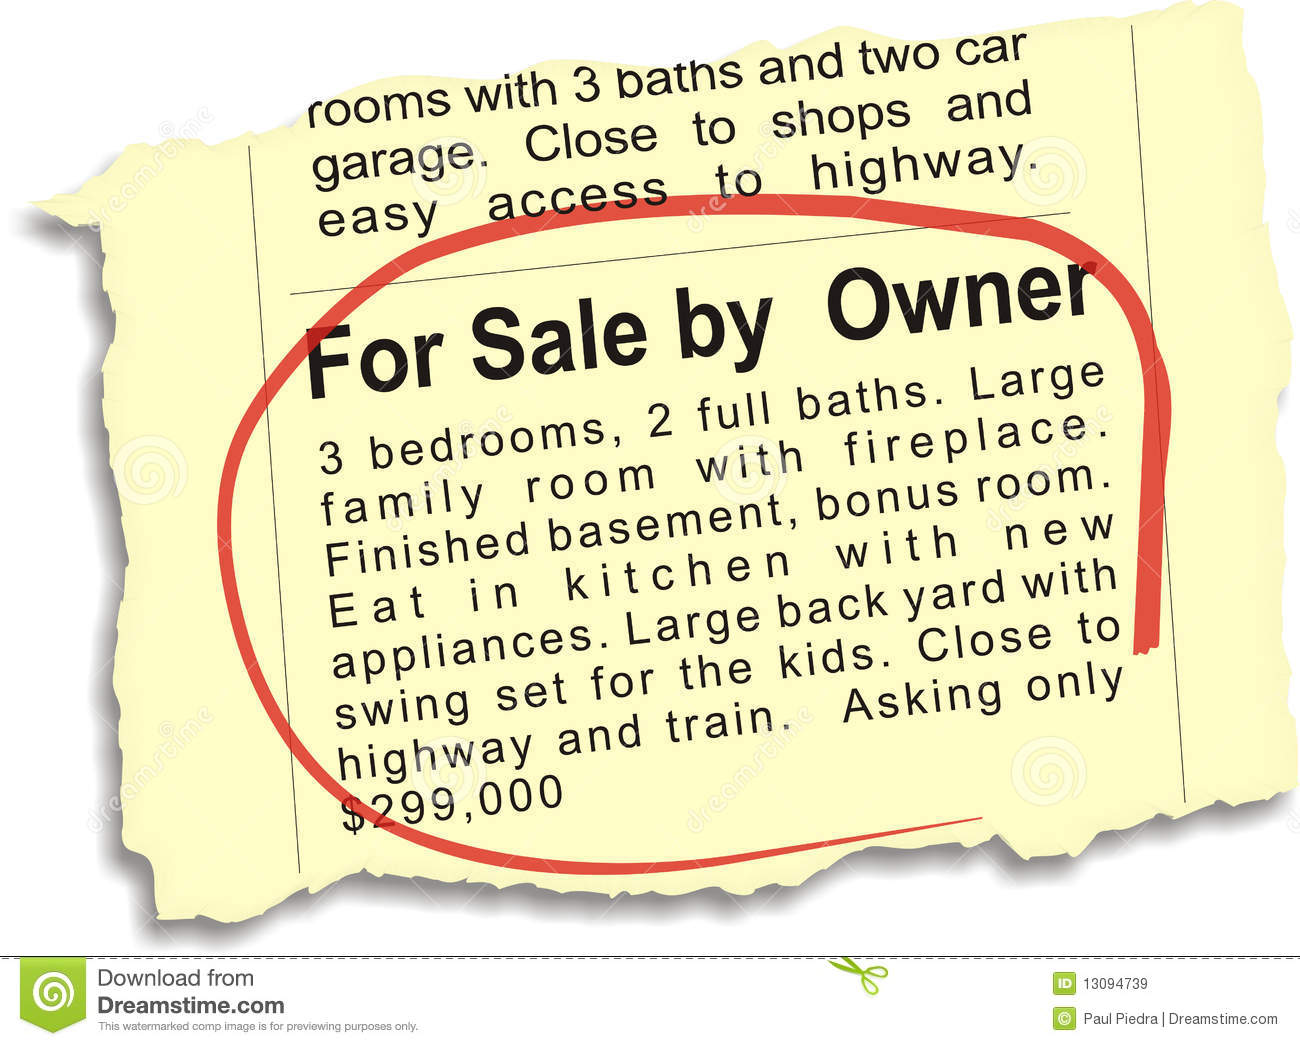 papers for sale by owner Whether you use an agent or sell by owner, you will still have to pay for preparing  the house for sale marketing costs legal fees and transfer taxes, if required.